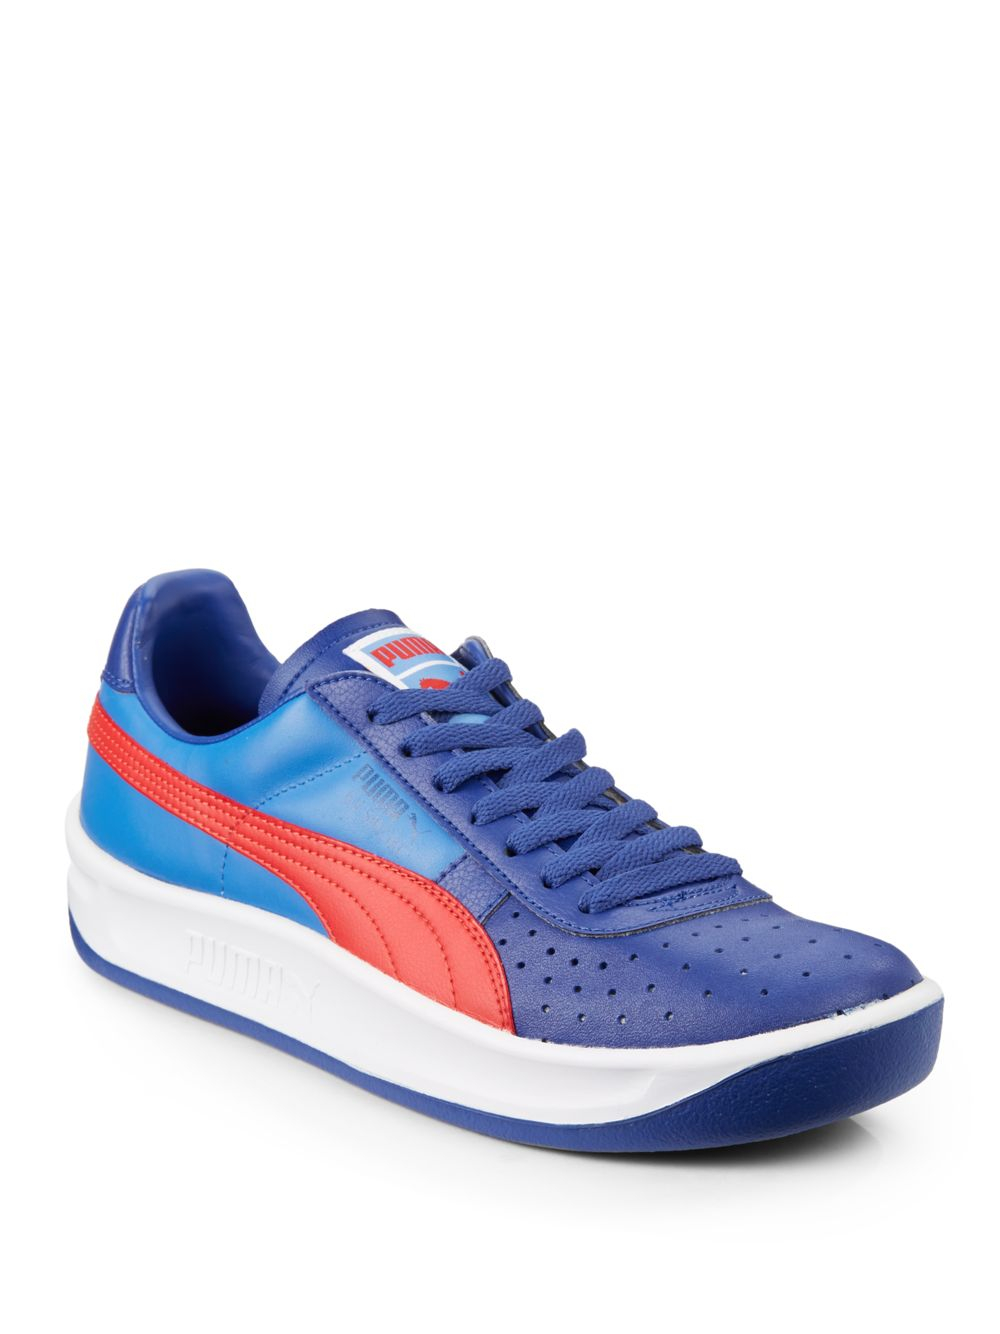 Lyst Puma Gv Special Leather Colorblock Sneakers In Blue